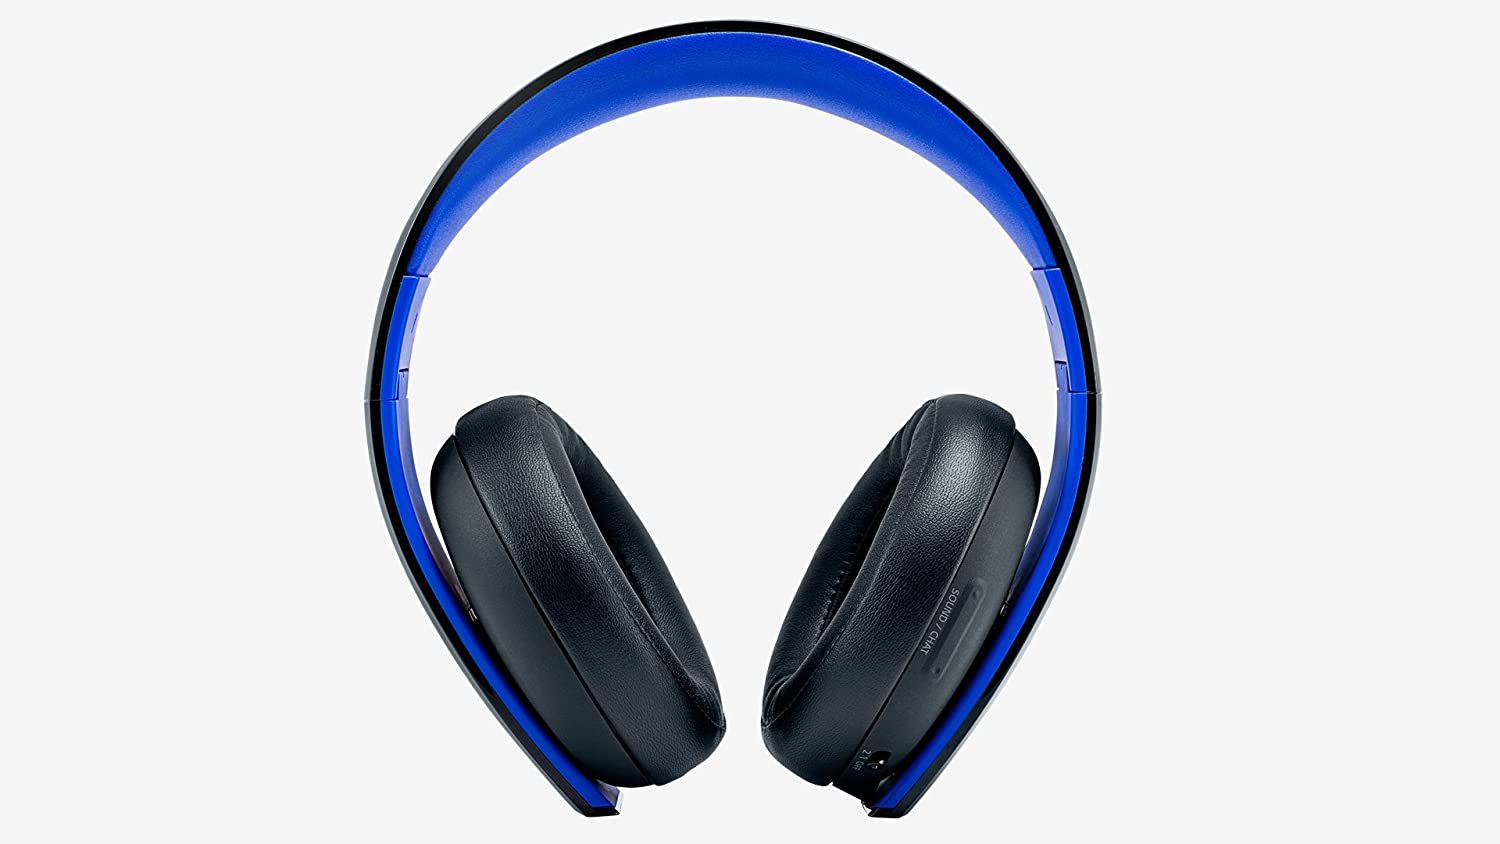 Sony PlayStation Wireless Stereo Headset 2.0 - Black (PS4 PS3 PS Vita)   Amazon.co.uk  PC   Video Games 2996a691c3